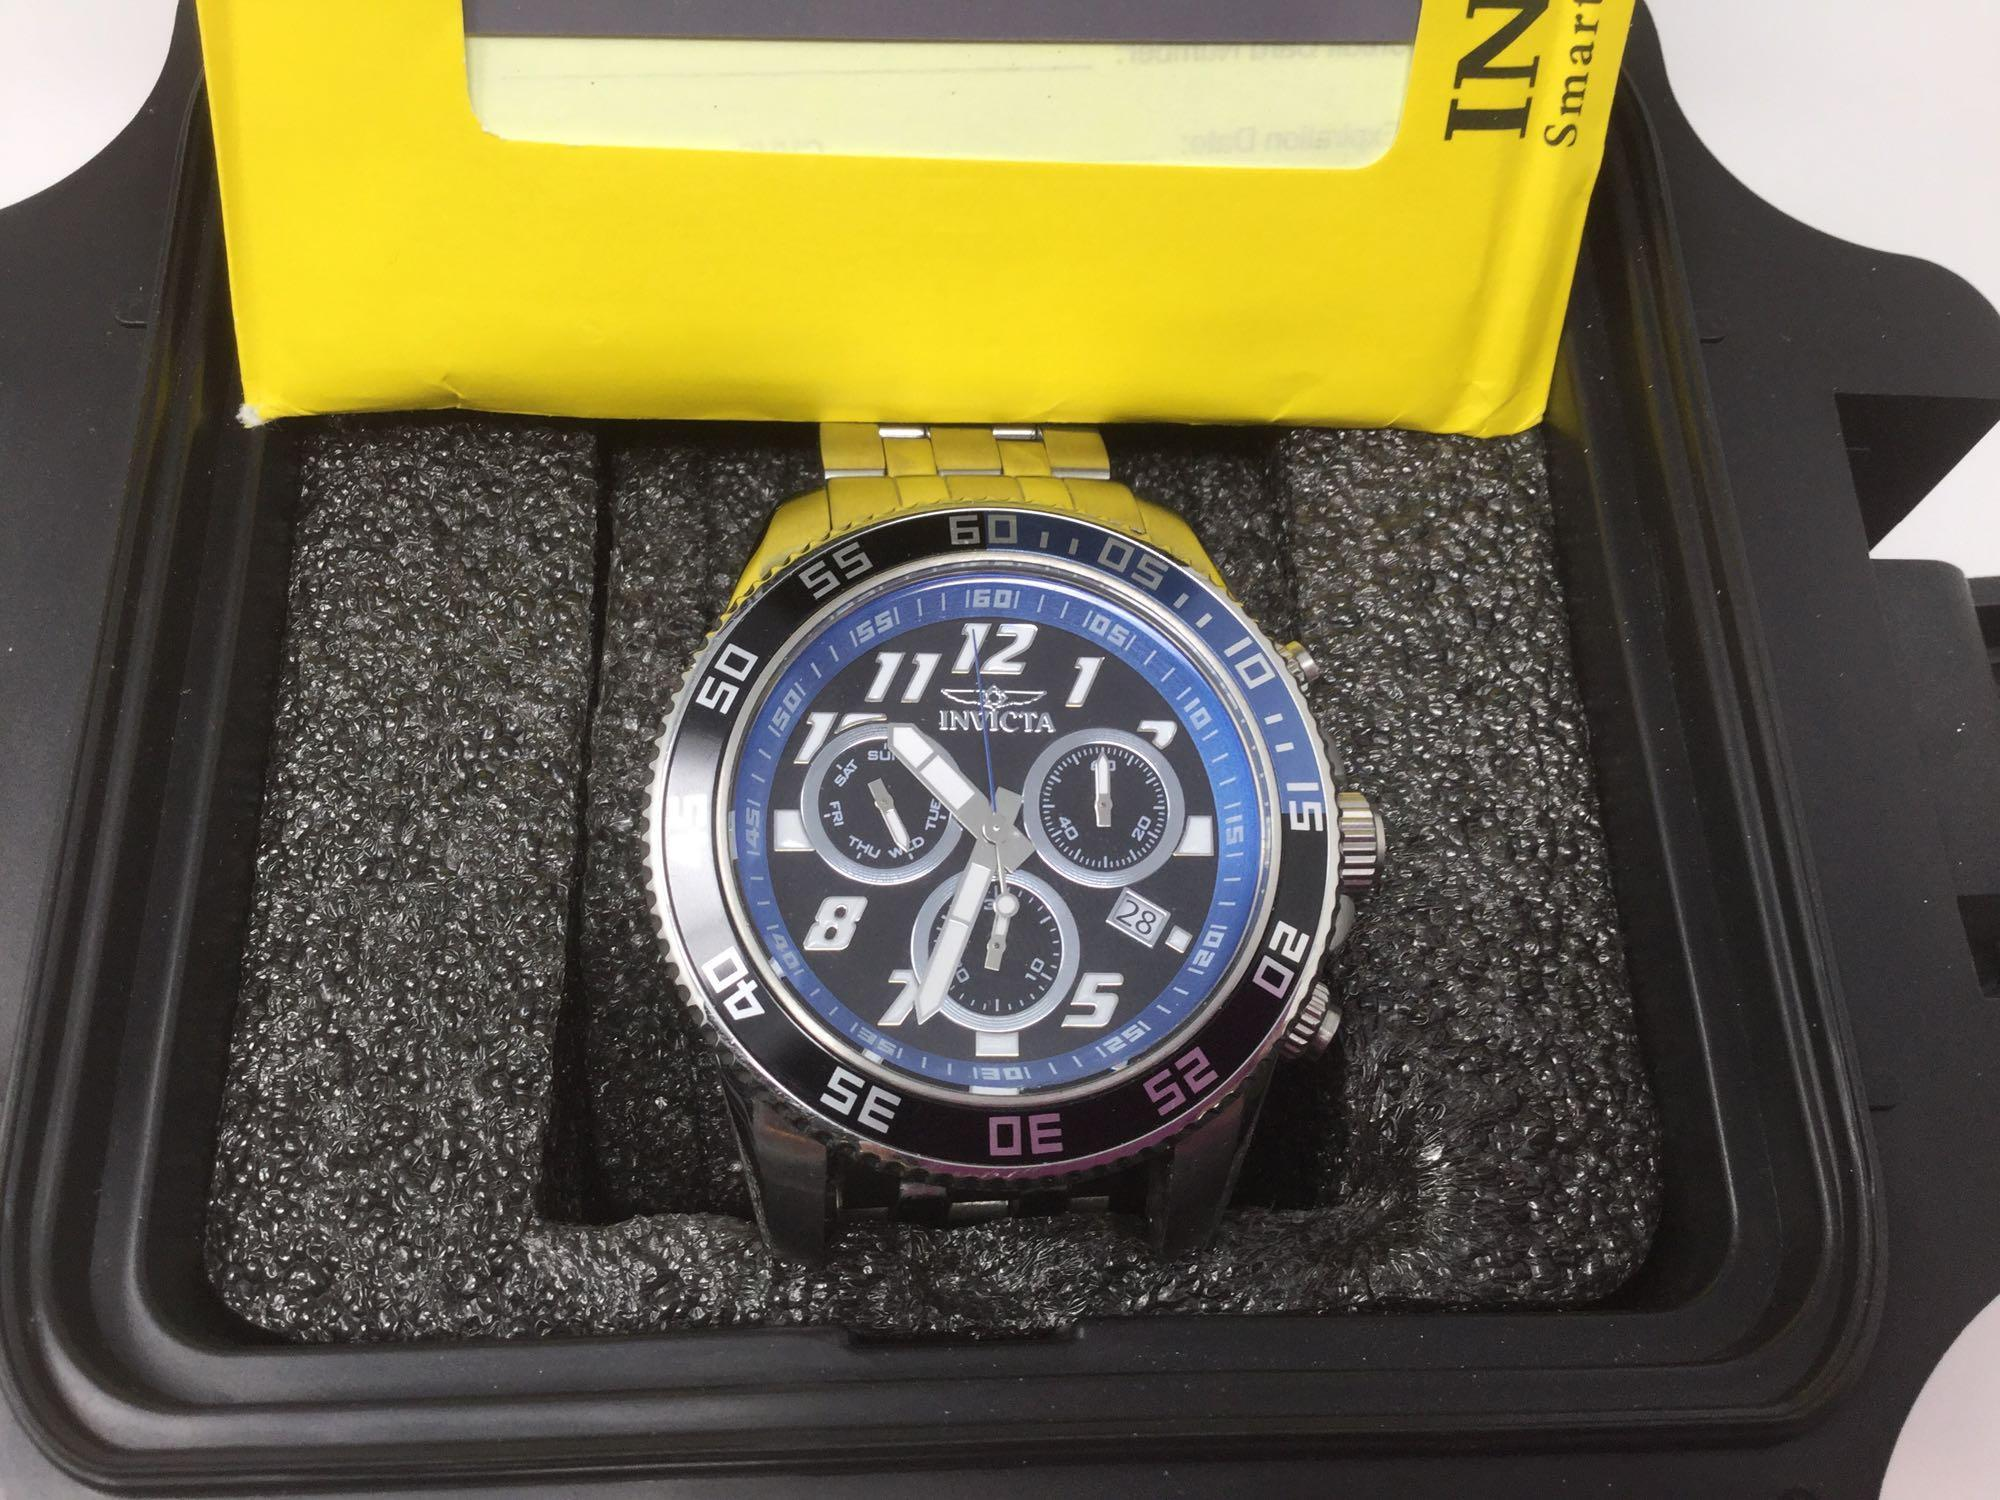 Lot 30 - Invicta Men's Wrist Watch